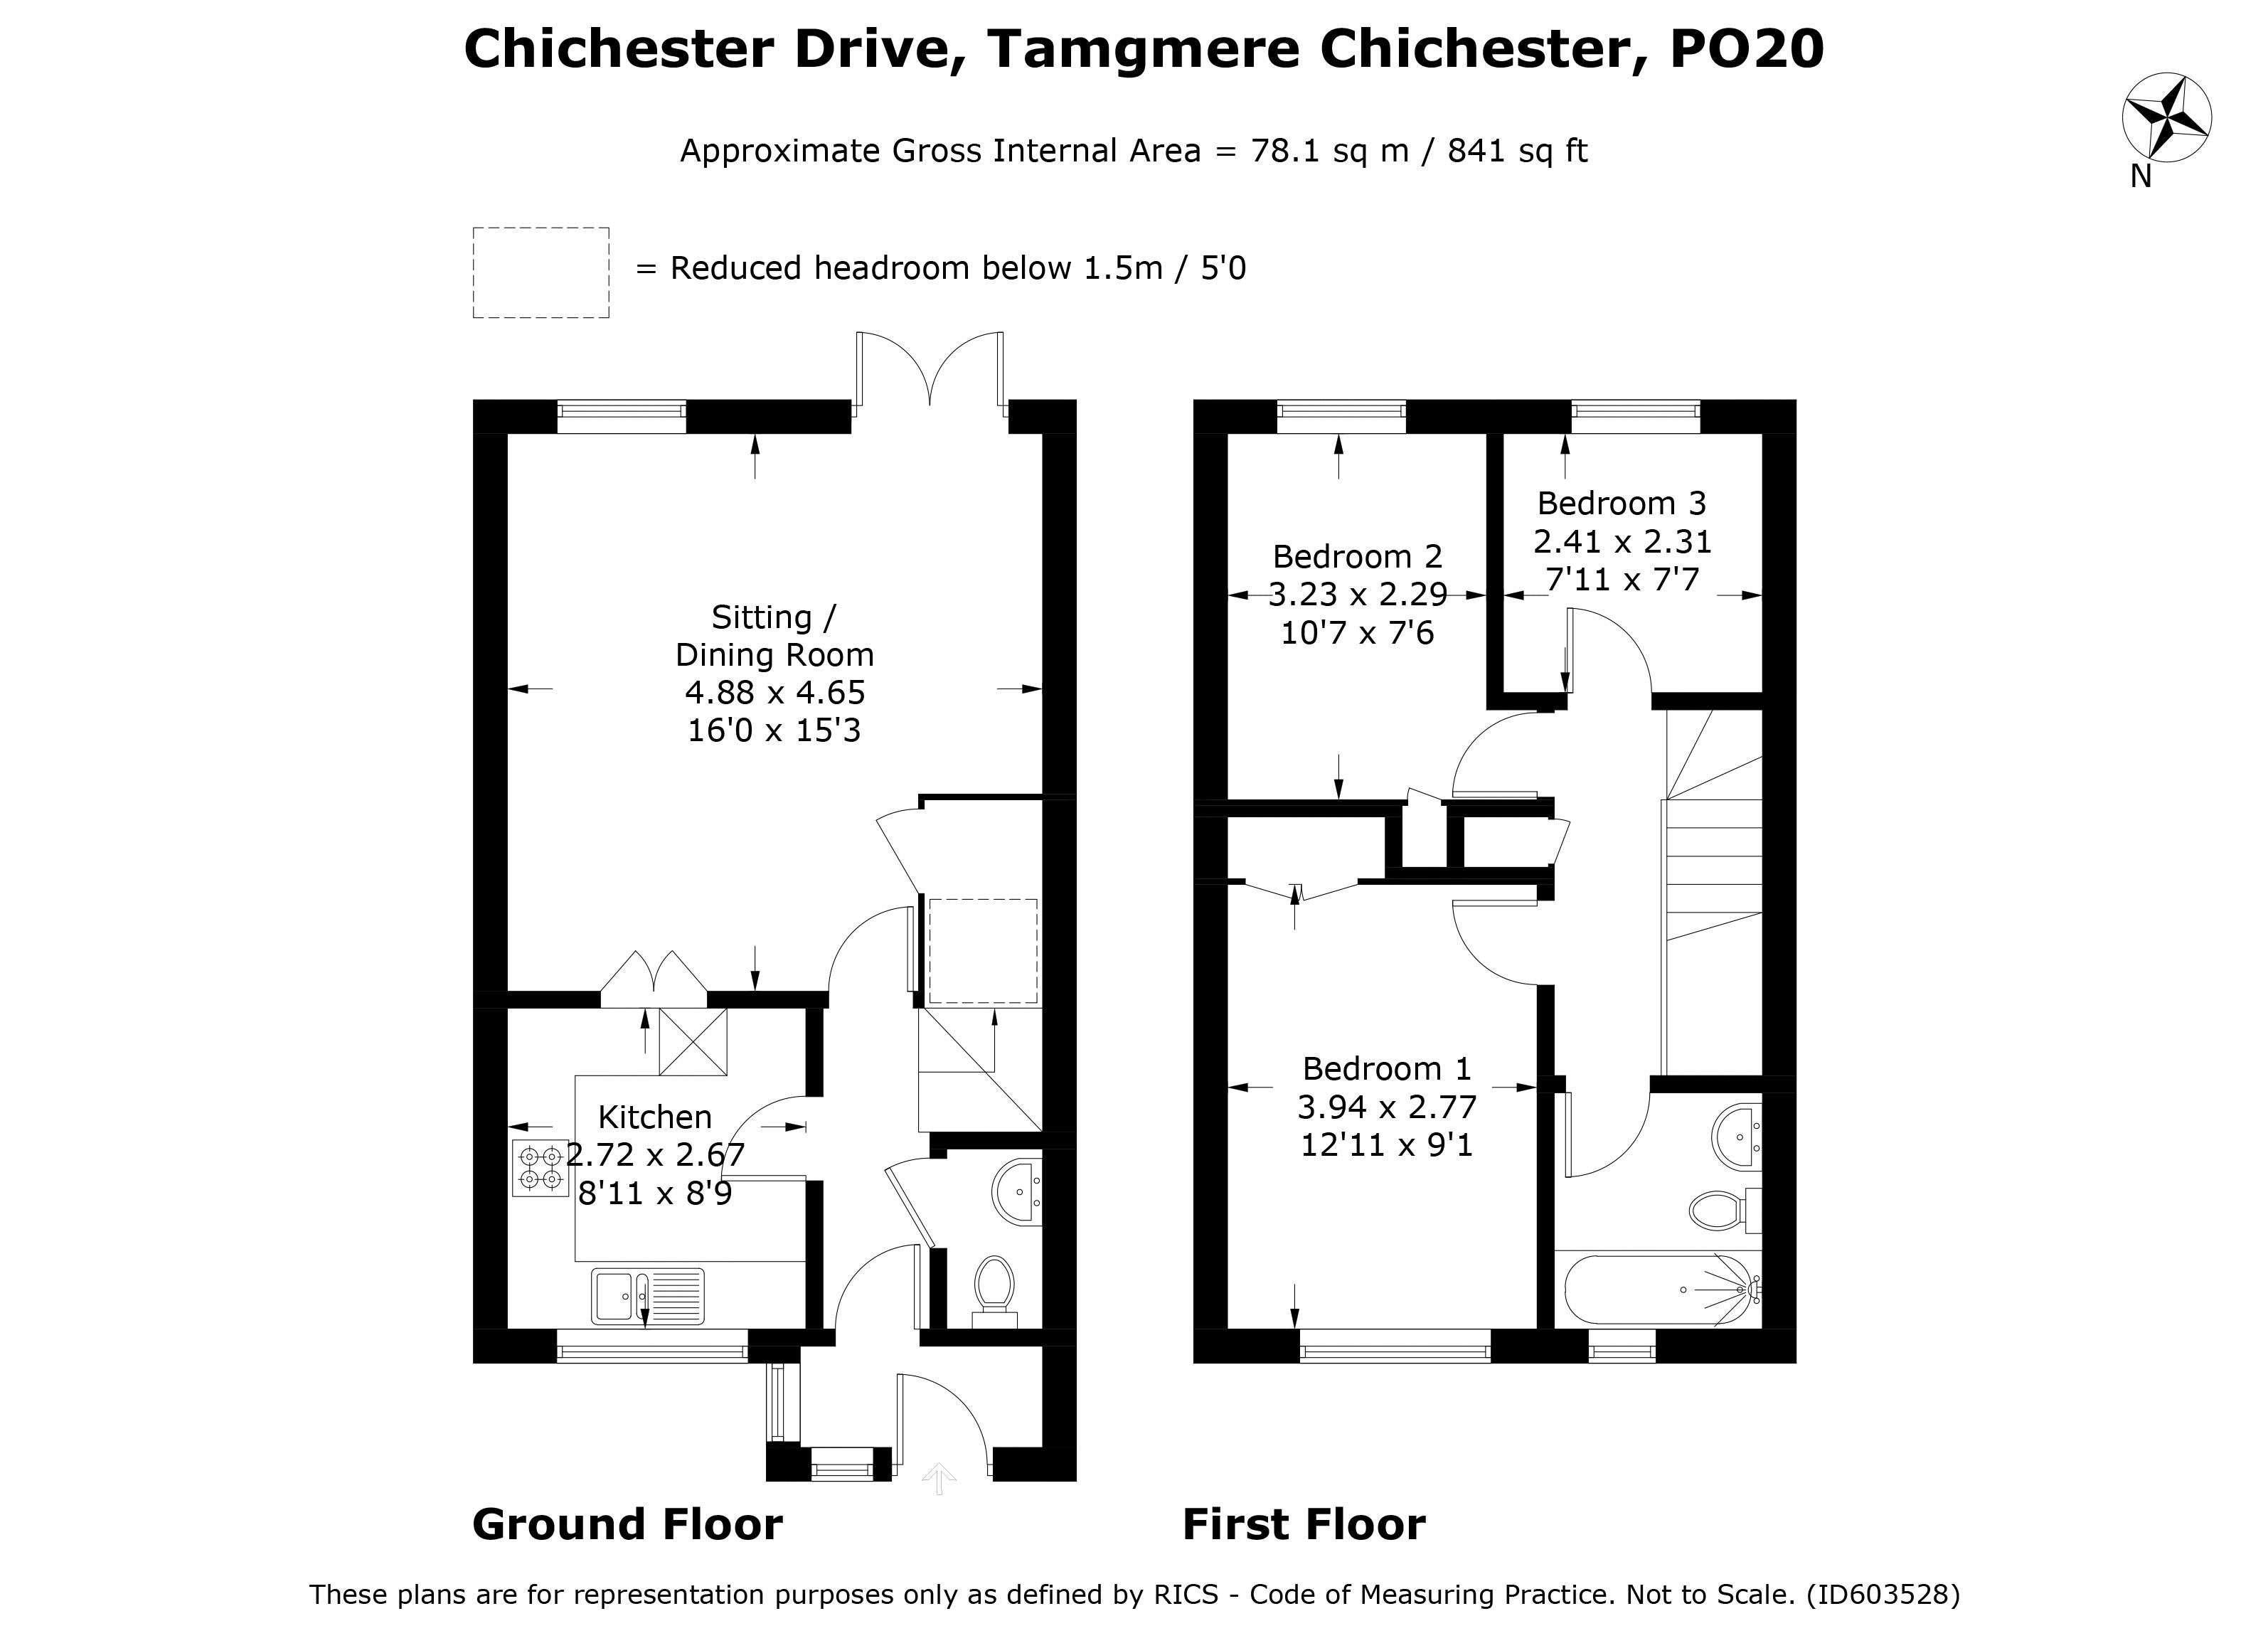 Chichester Drive Tangmere